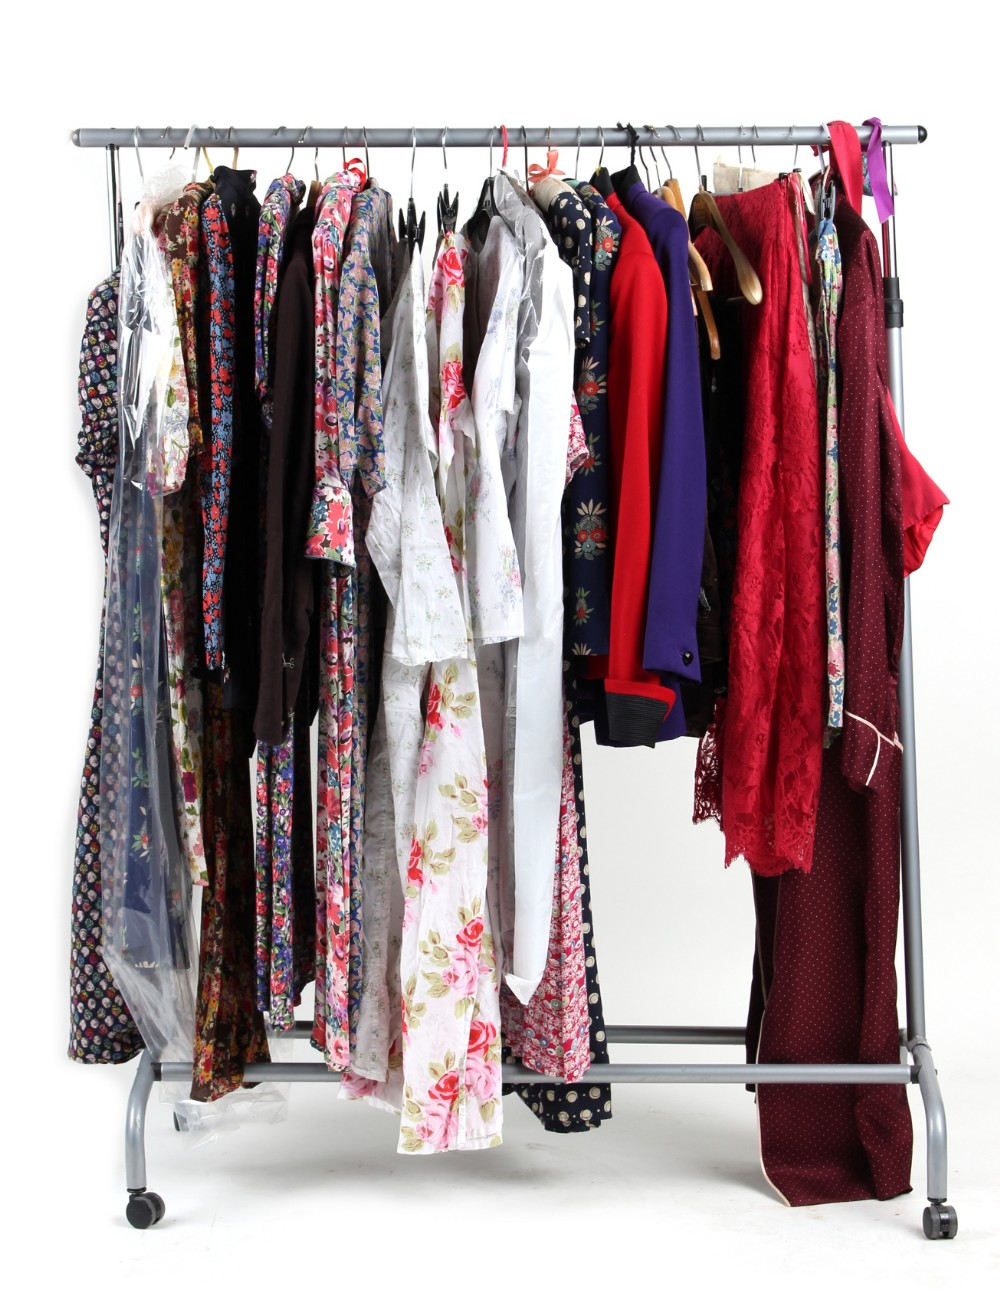 Property of a deceased estate - a quantity of lady's clothing including dresses, jackets and skirts,